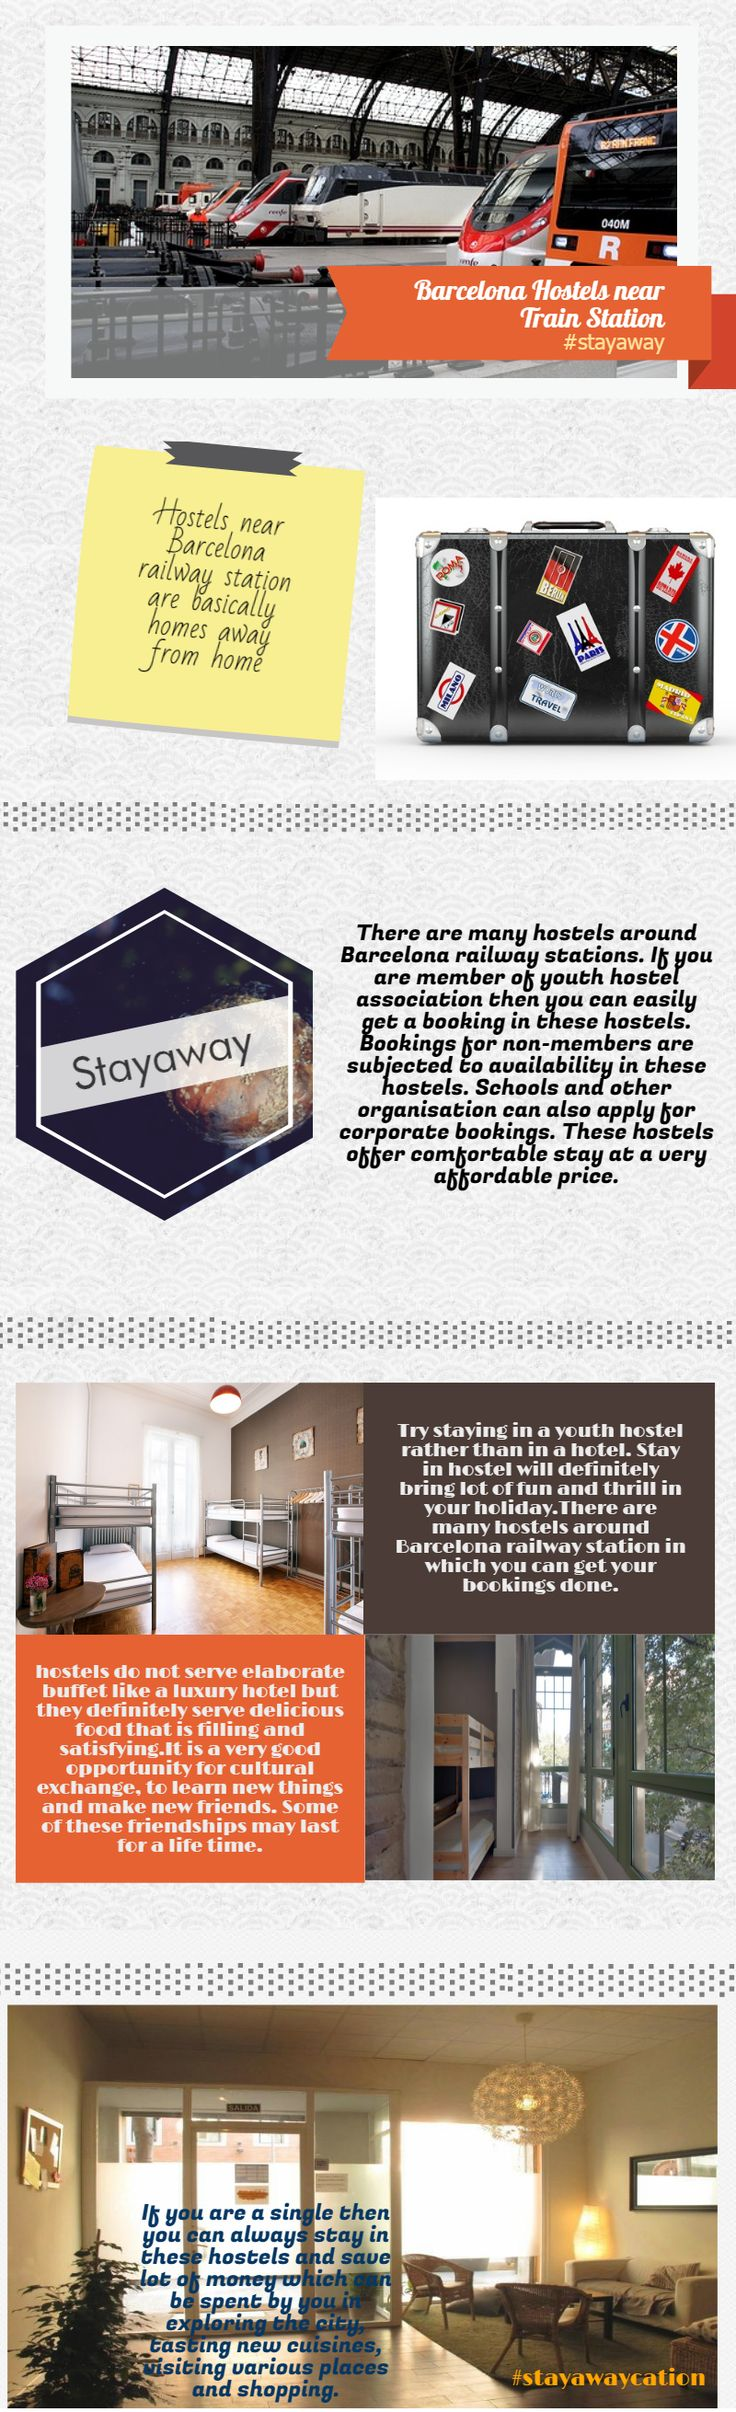 Are you looking for Hostels to stay in Barcelona! Stayaway.com offers wide choice of Barcelona hostel near Train station. Book Online to confirm your stay. #barcelonahostelneartrainstation #CheapHostelsinBarcelona #CheapHotels andhostelsnearBarcelonaRailwayStation #CheapbudgethotelsinBarcelona #HotelsnearRailwaystationBarcelona #budgethotelsnearBarcelonaRailwaystation #Stayaway